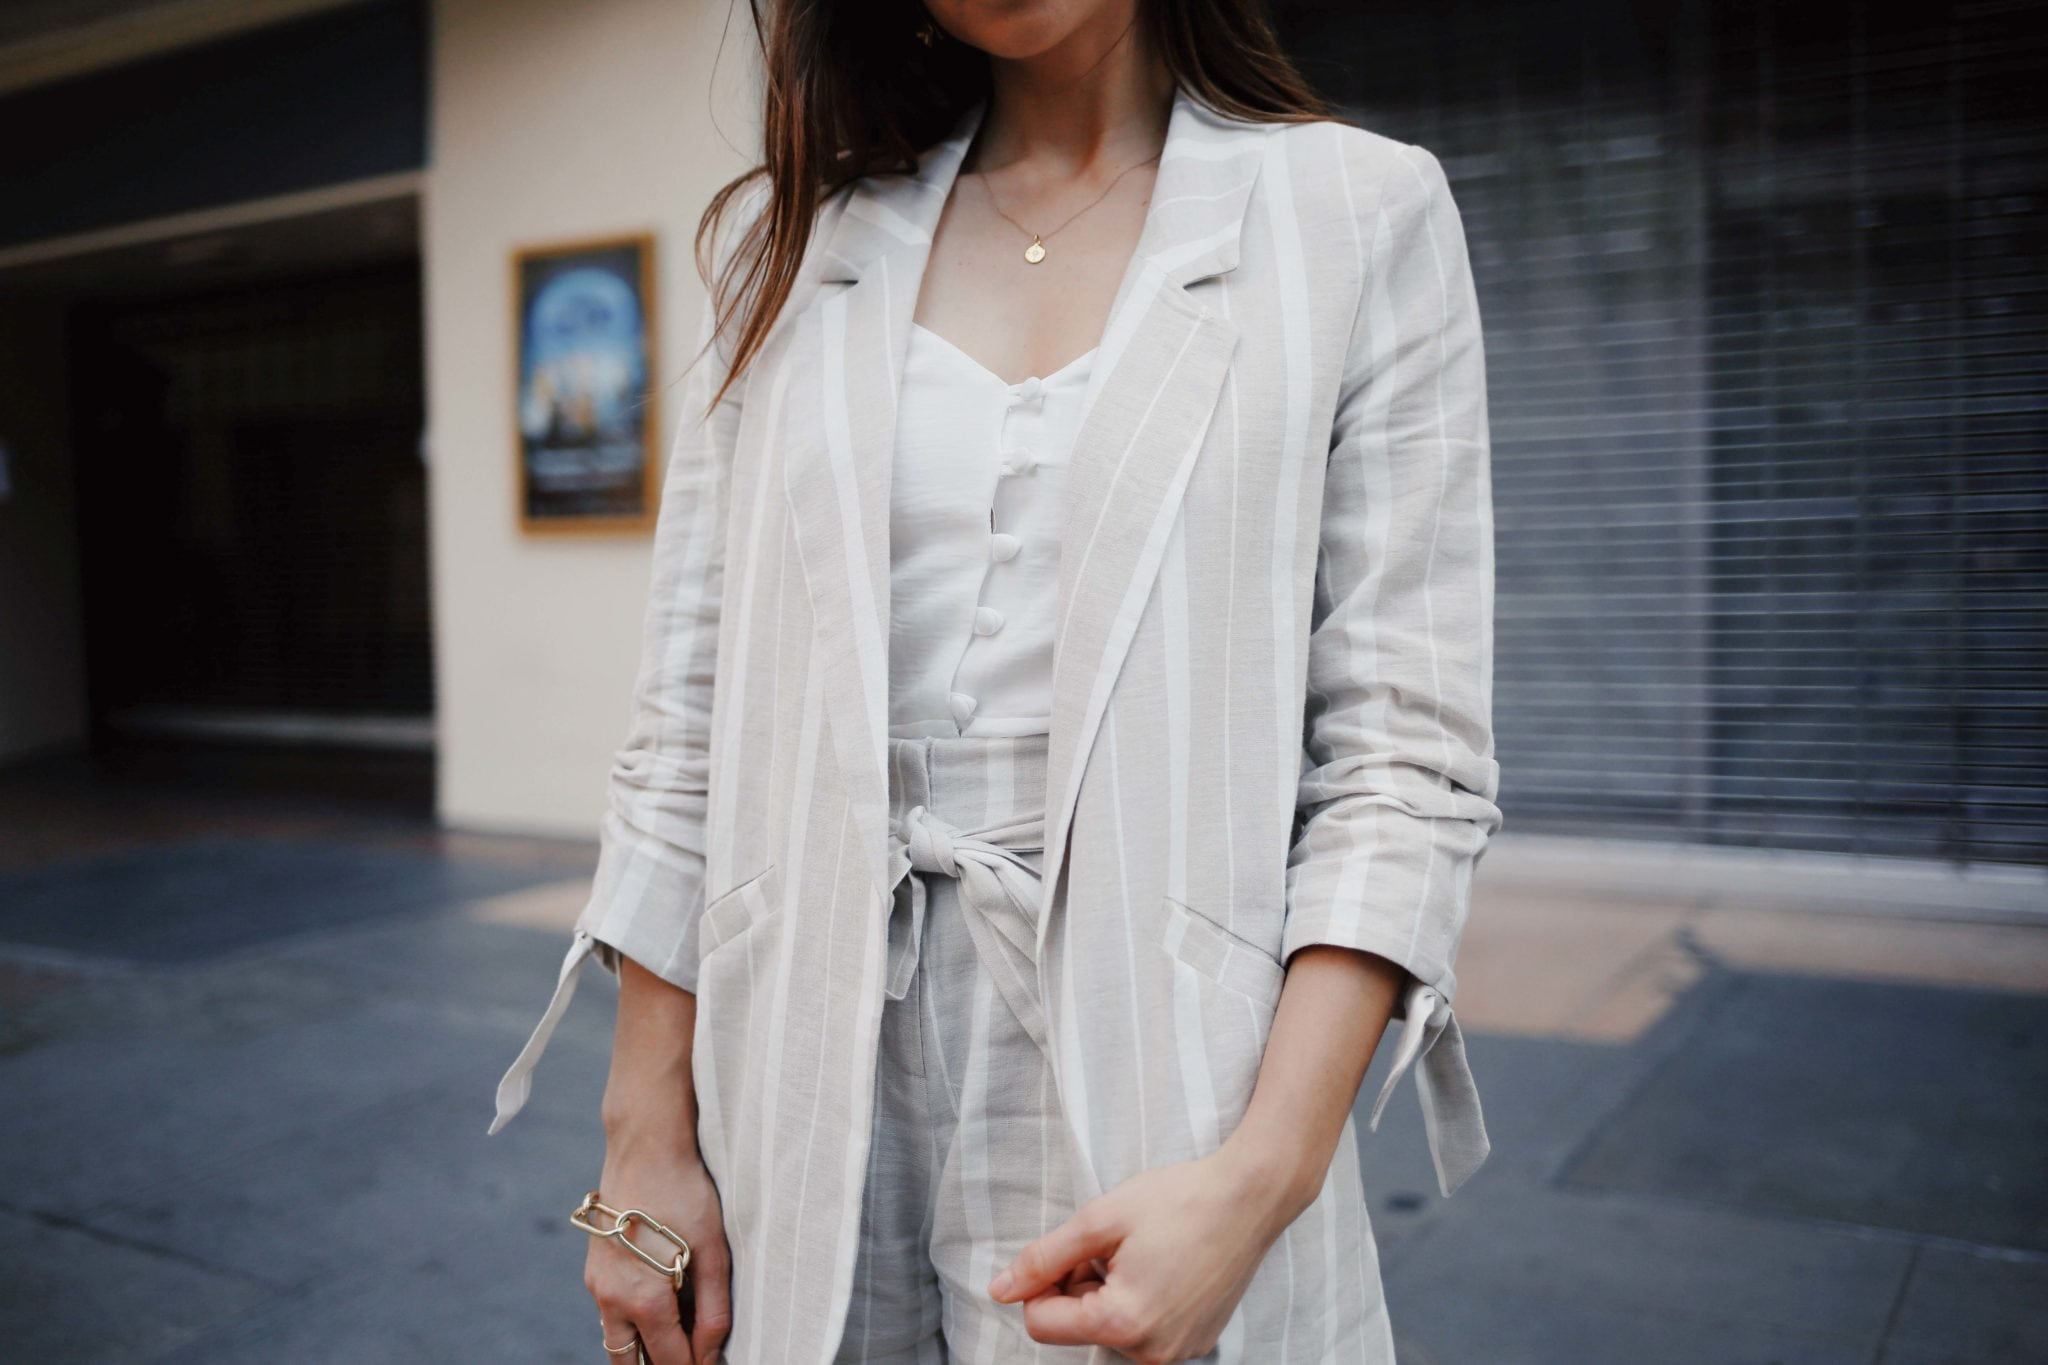 How to style linen for Summer - The linen suits for work and the bardot dress from River Island. Summer style - Read this post for summer outfit ideas using linen fabric. More on modersvp.com by fashion blogger Julia Comil